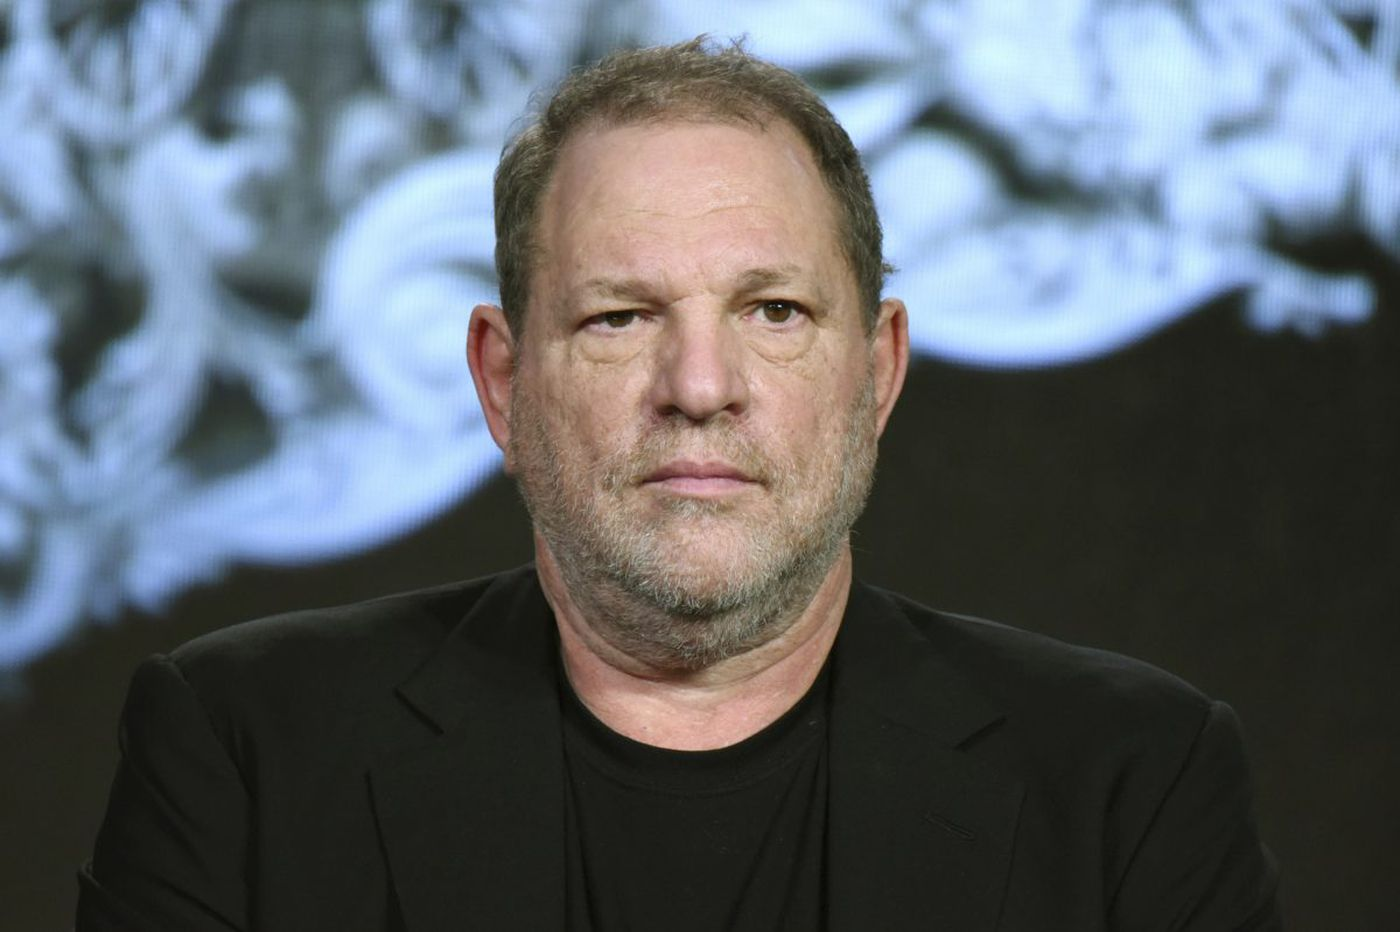 NBC News passed on Harvey Weinstein scandal, leading to New Yorker and New York Times exposes